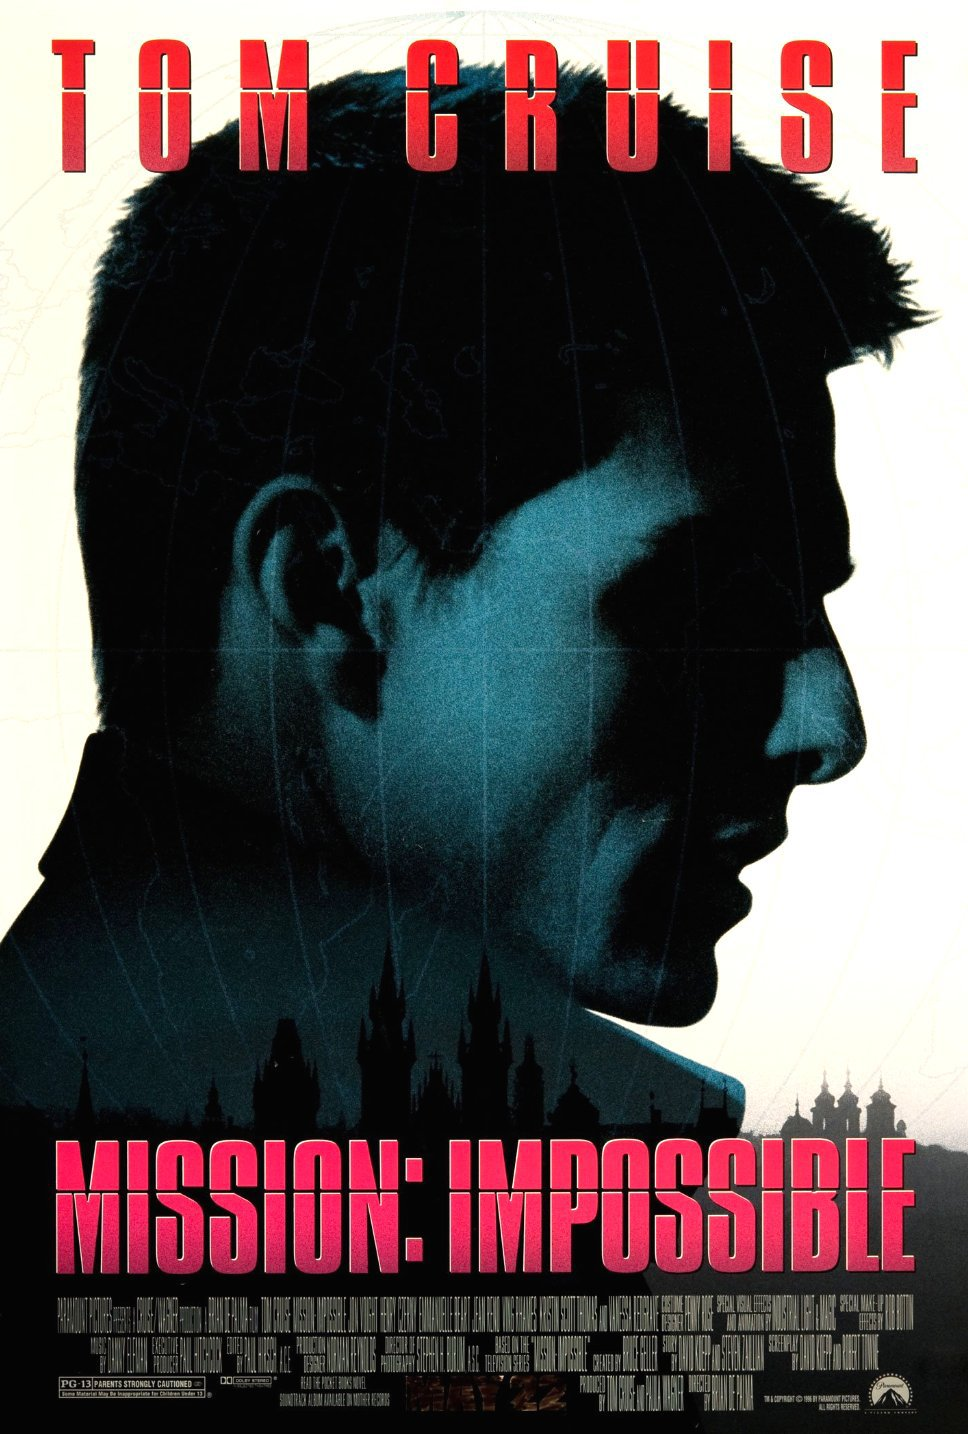 Mission: Impossible (1996) BluRay 480p, 720p, 1080p & 4K-2160p